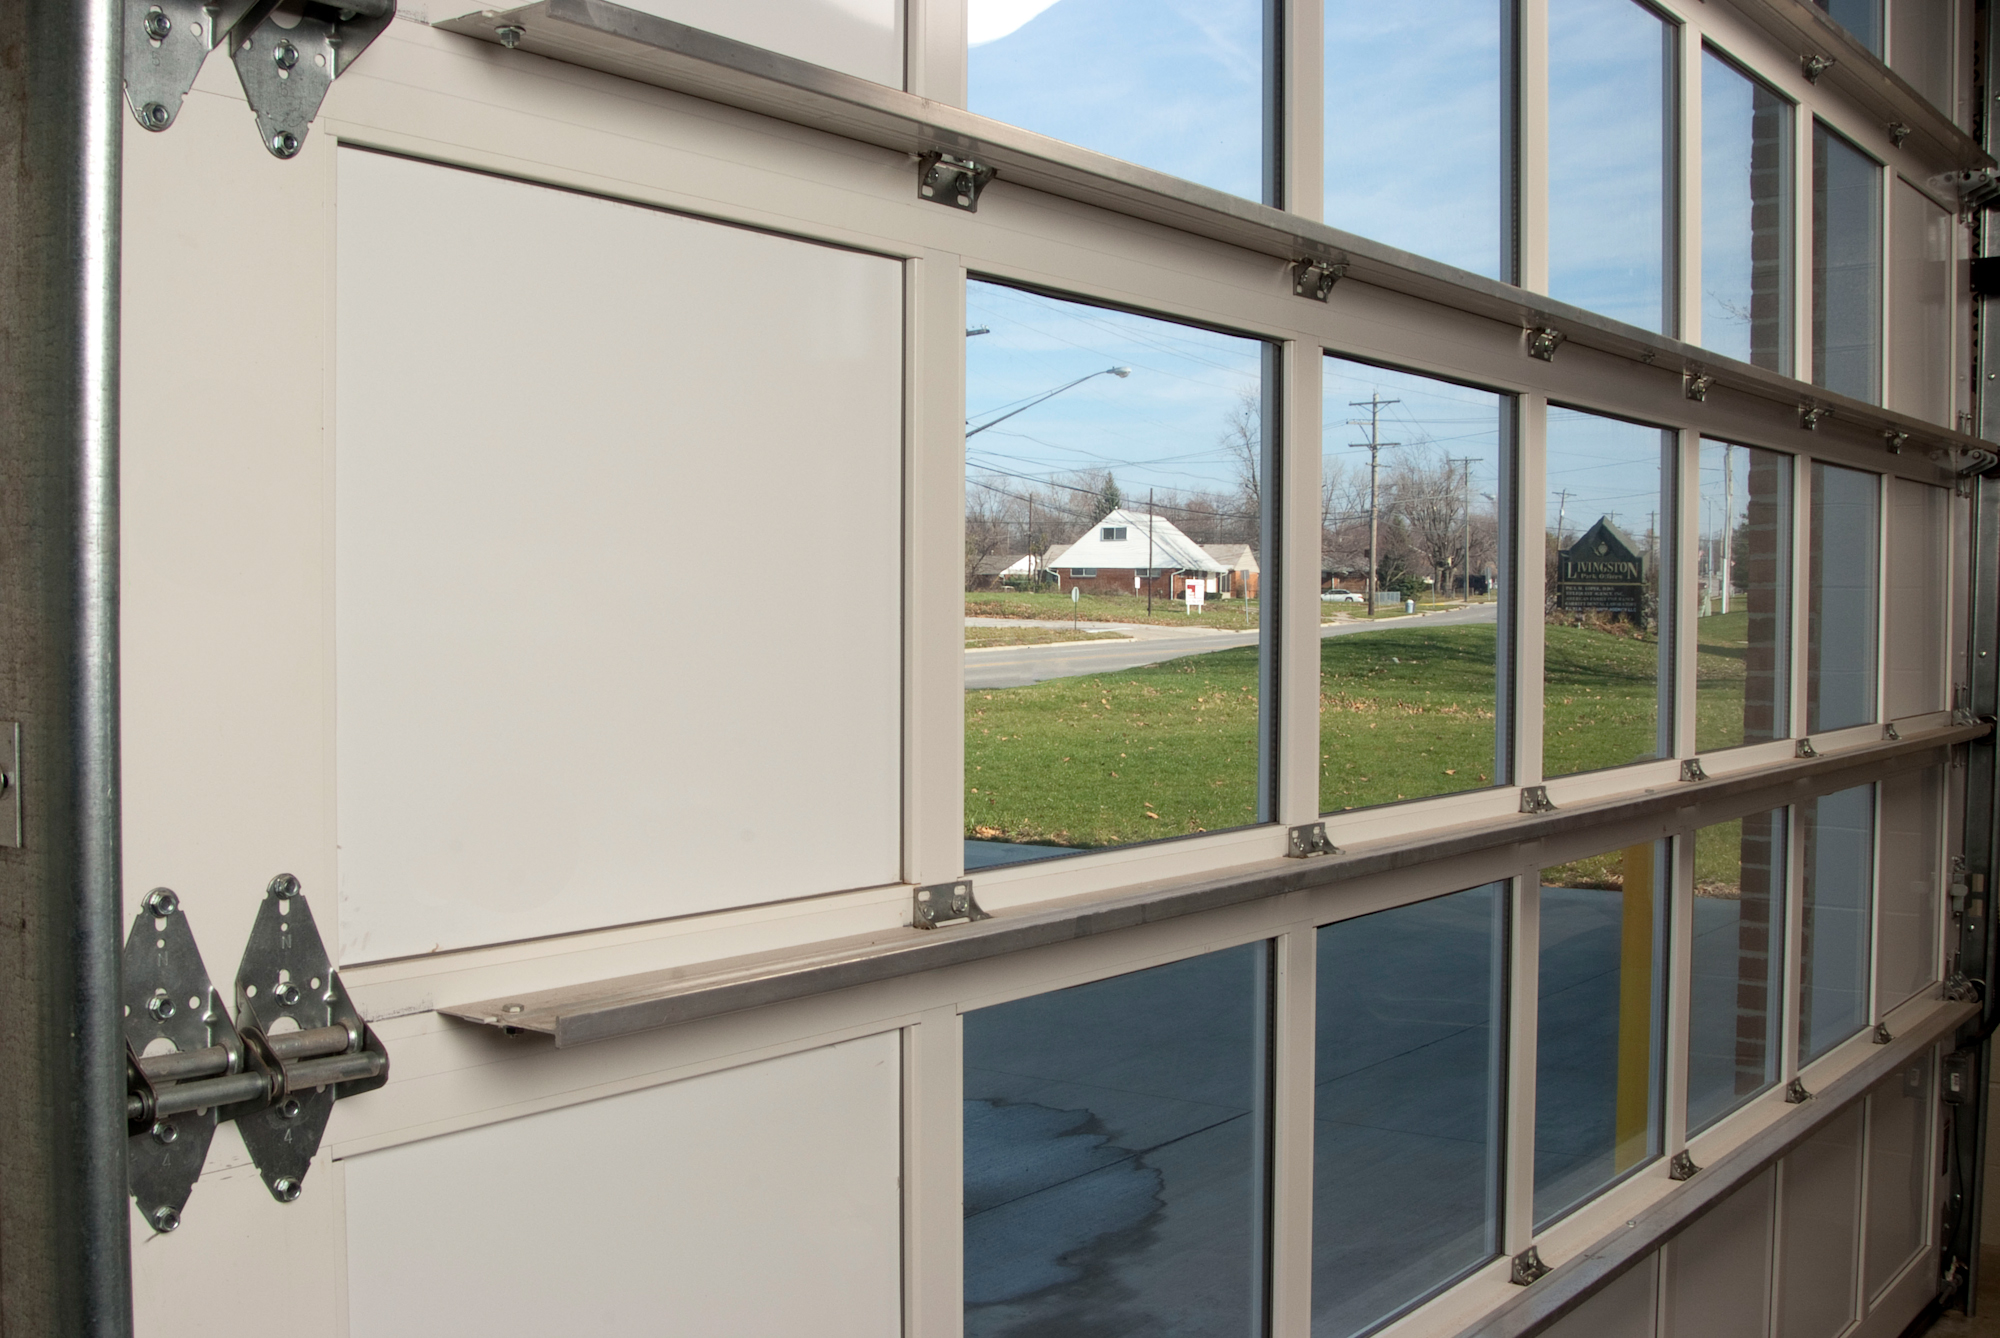 1338 #446B87 Gfx/products/000117/ DSF0251.jpg pic Residential Garage Doors Direct 38212000